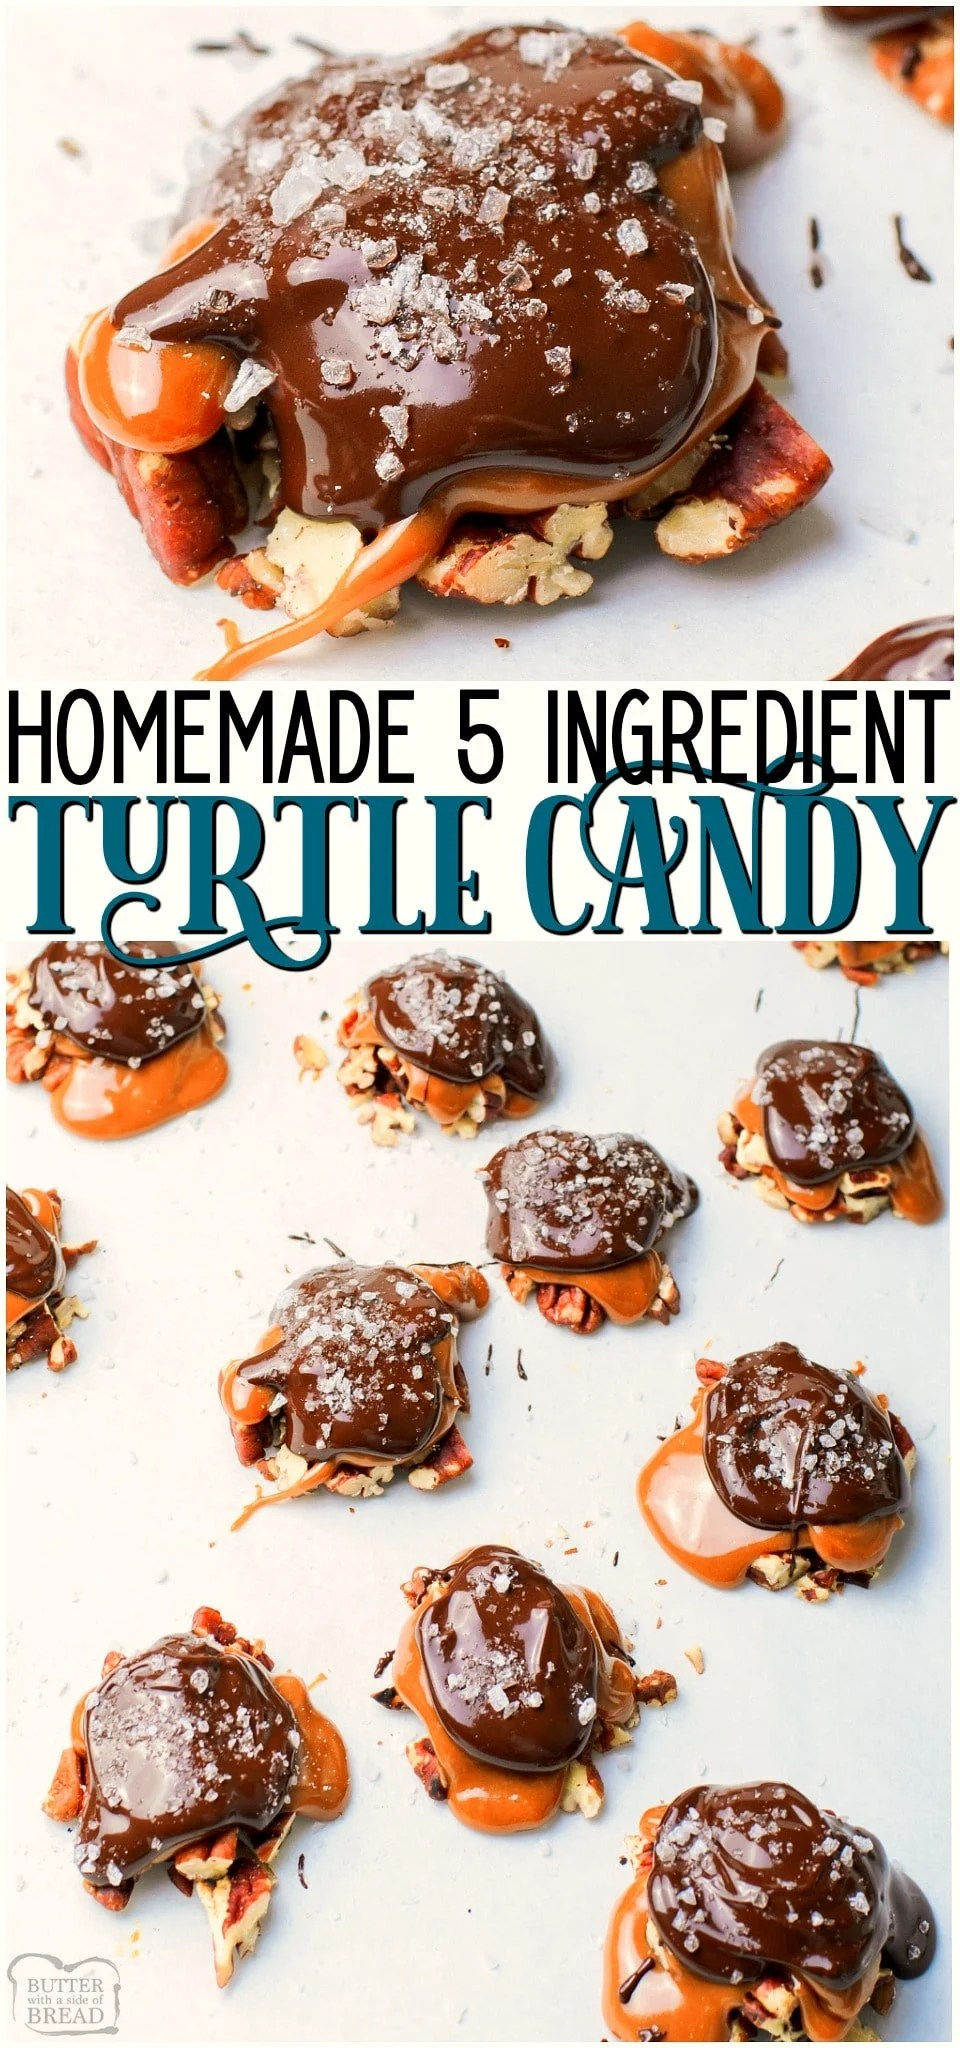 Homemade turtle candy recipe with just 5 ingredients & perfect for holiday dessert trays! With toasted pecans, melted chocolate, and gooey caramel in every bite, these easy to make candies are a perfect treat! #candy #turtle #caramel #nuts #chocolate #holidays #easyrecipe from BUTTER WITH A SIDE OF BREAD